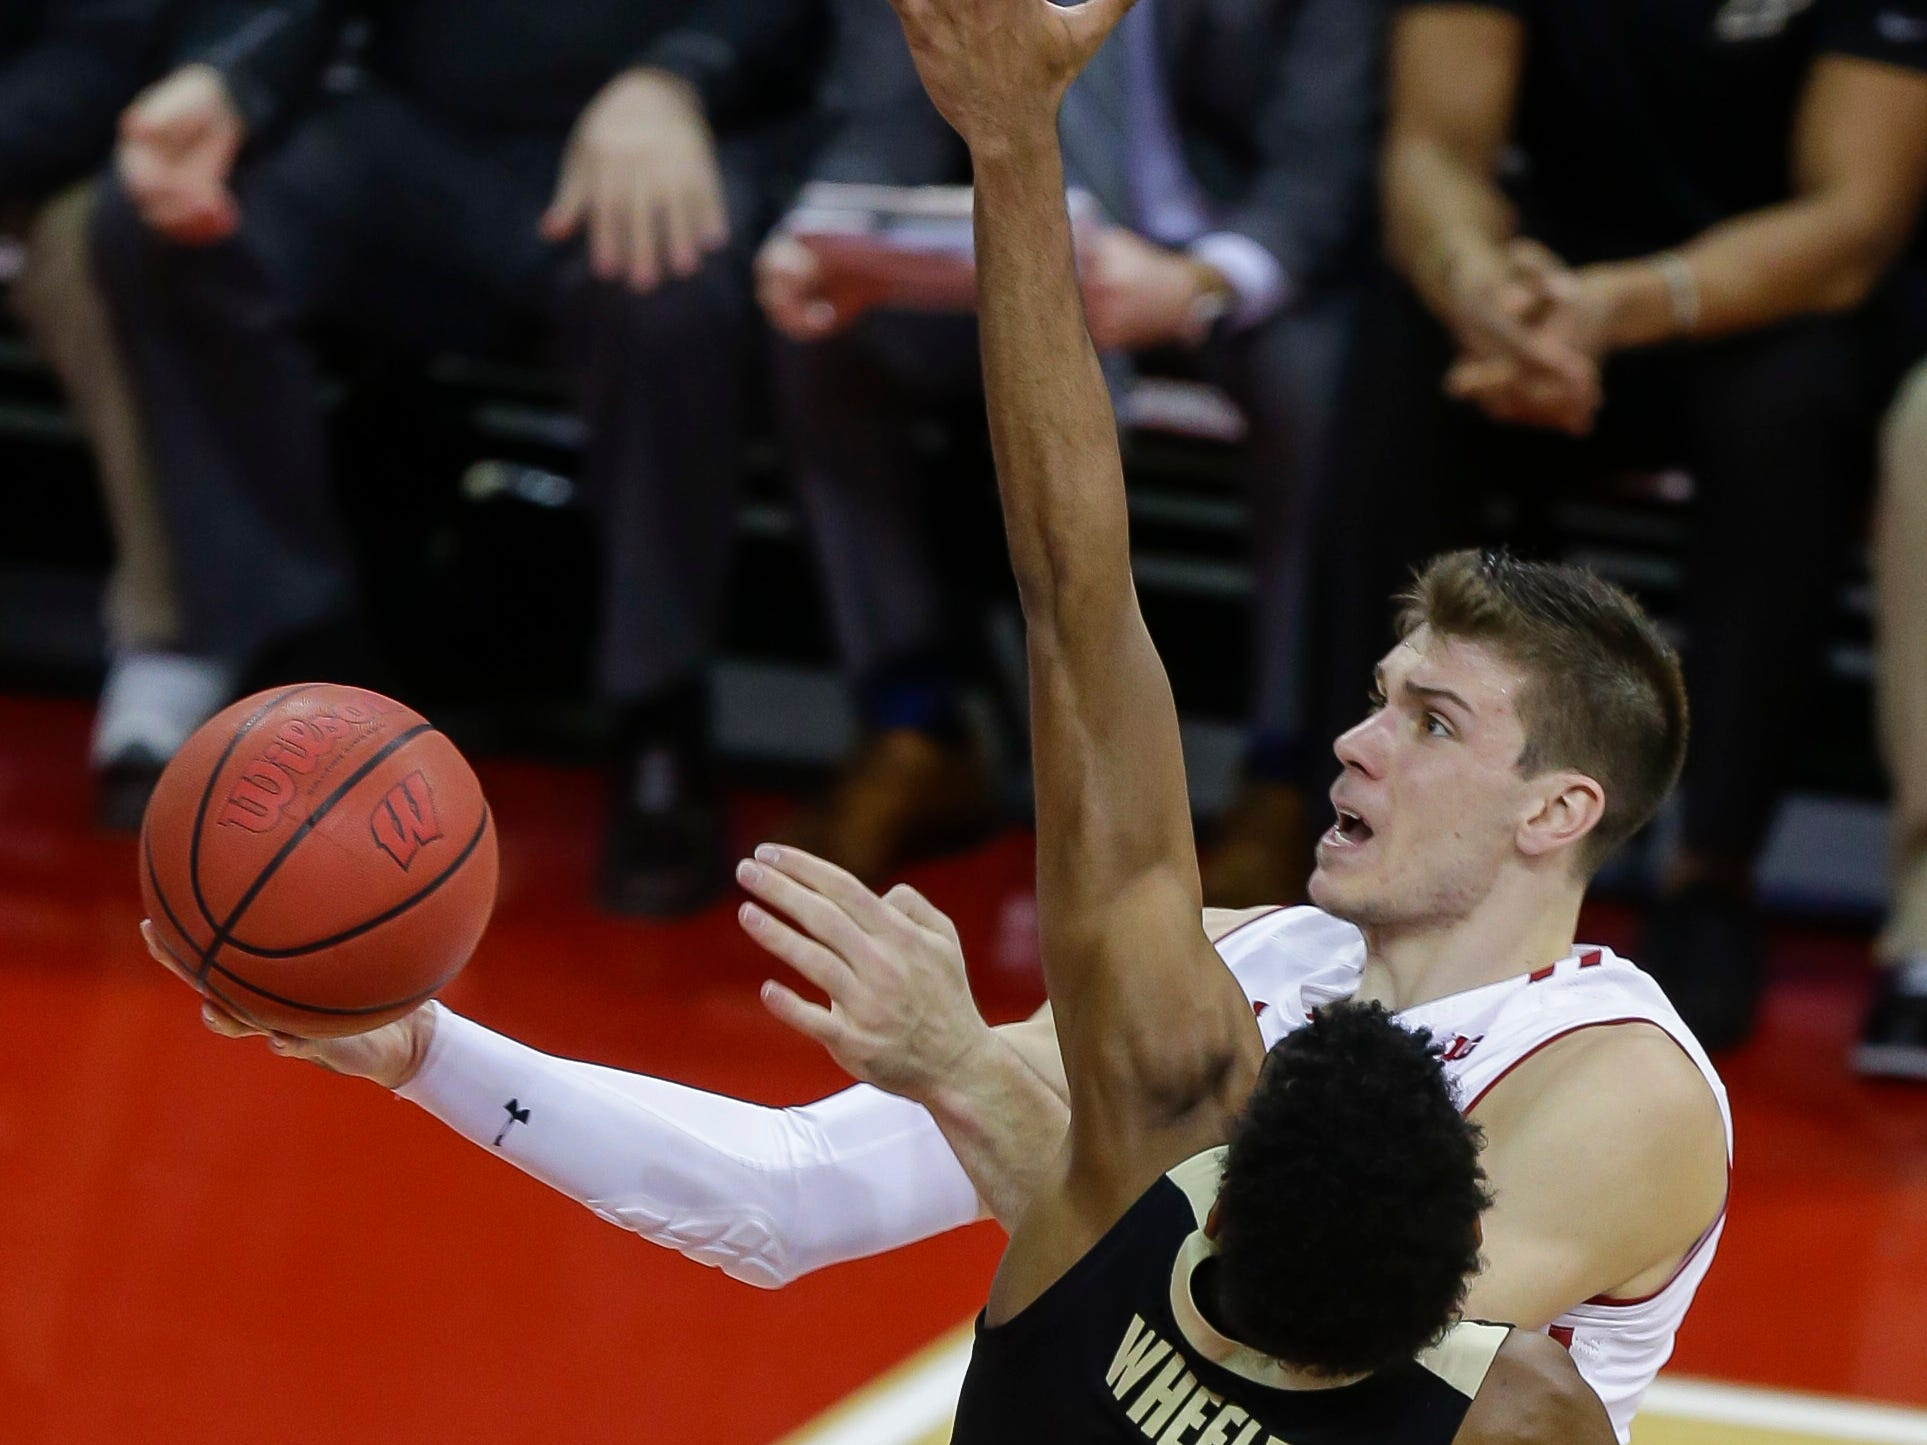 Wisconsin's Ethan Happ goes in for a shot against Purdue's Aaron Wheeler during the first half Friday.